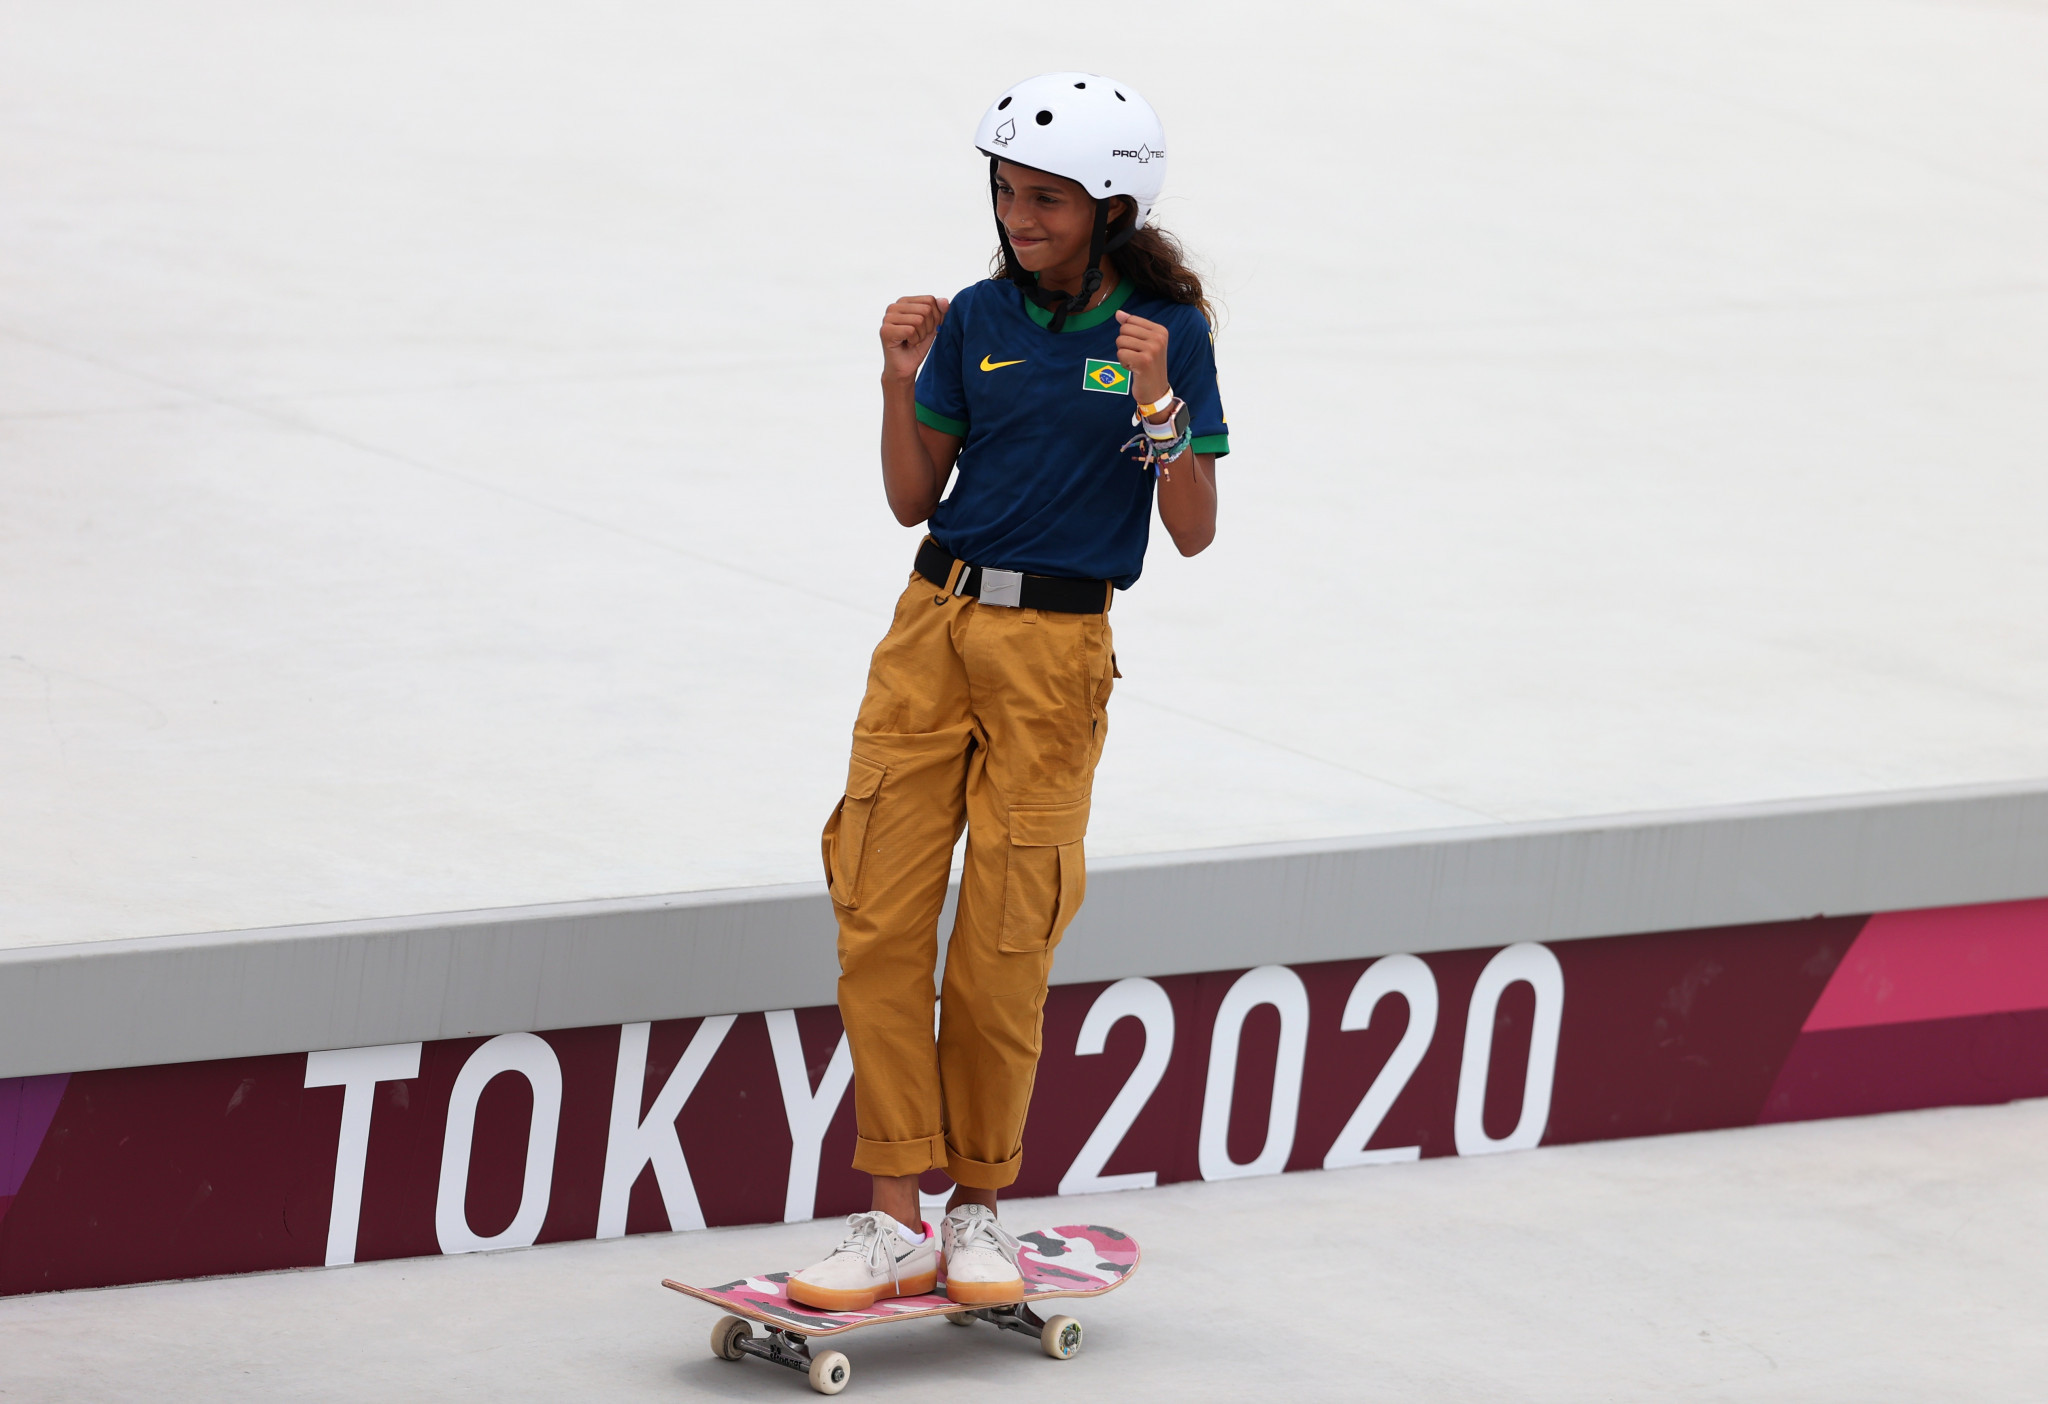 Skateboarder Rayssa Leal received the Visa Award in recognition of her display of sportsmanship towards her competitors in Tokyo ©Getty Images